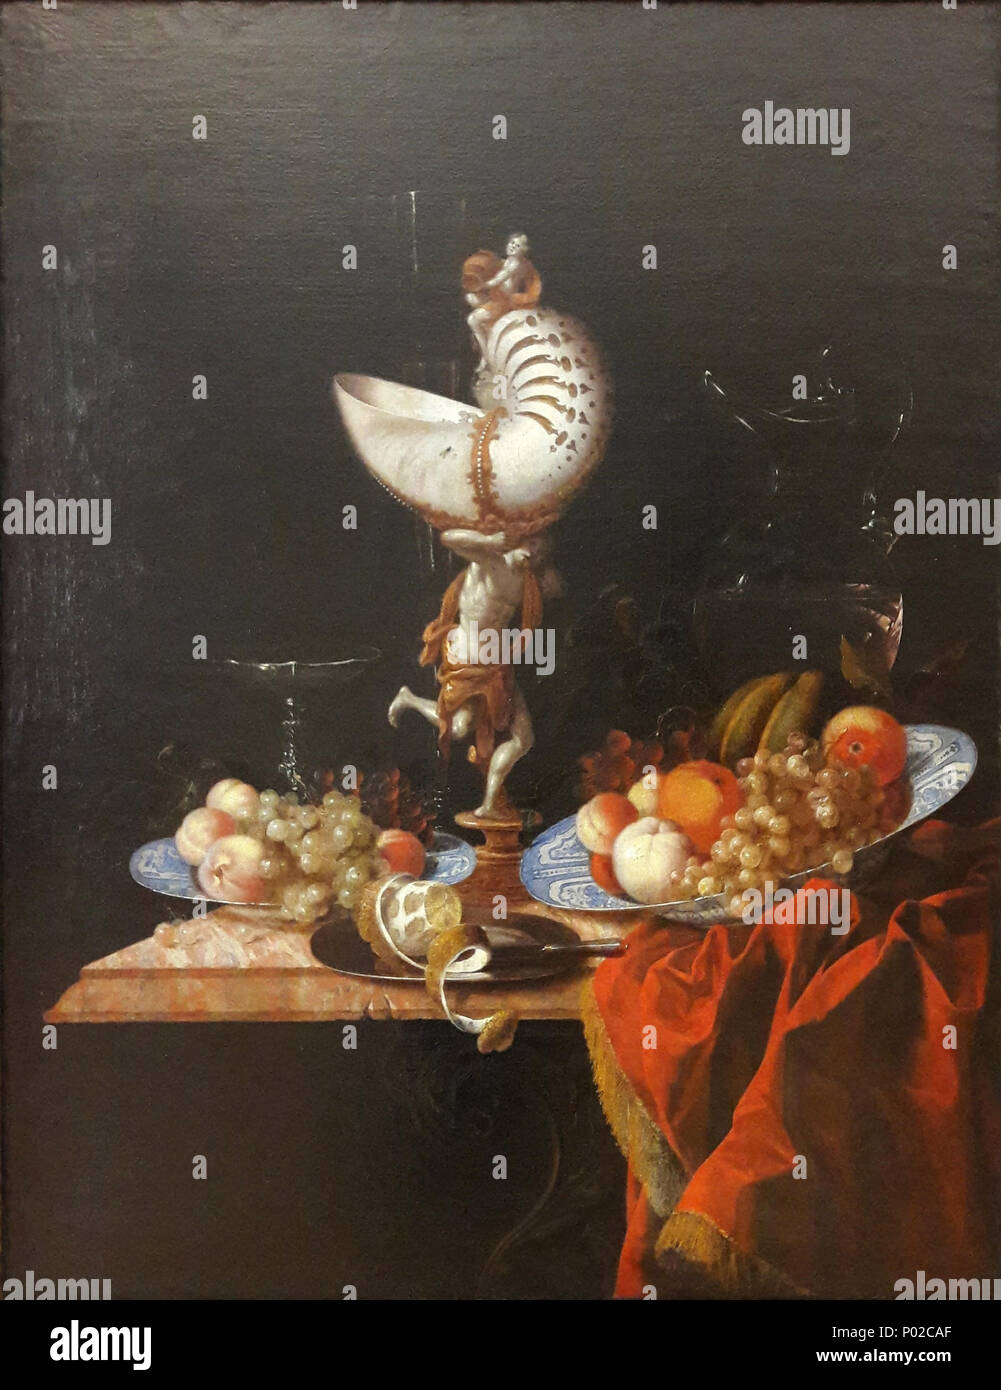 . Still life with a nautilus cup . third quarter of 17th century 17 Hinz Still life with a nautilus cup - Stock Image